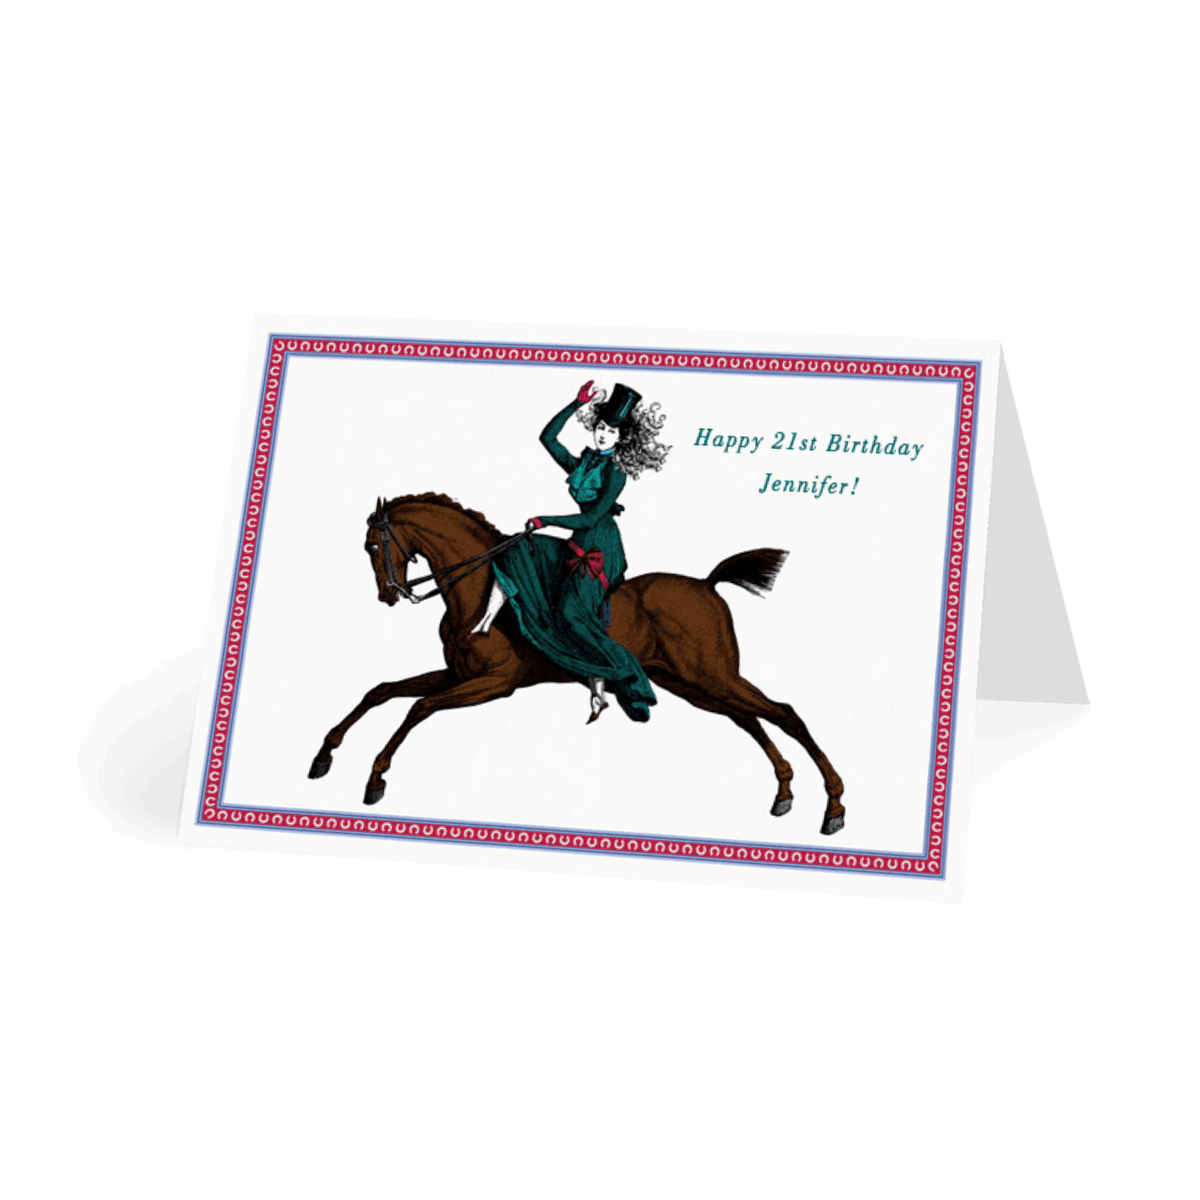 Https%3a%2f%2fwww.papier.com%2fproduct image%2f13074%2f14%2flady on her horse 3297 front 1480609963.png?ixlib=rb 1.1